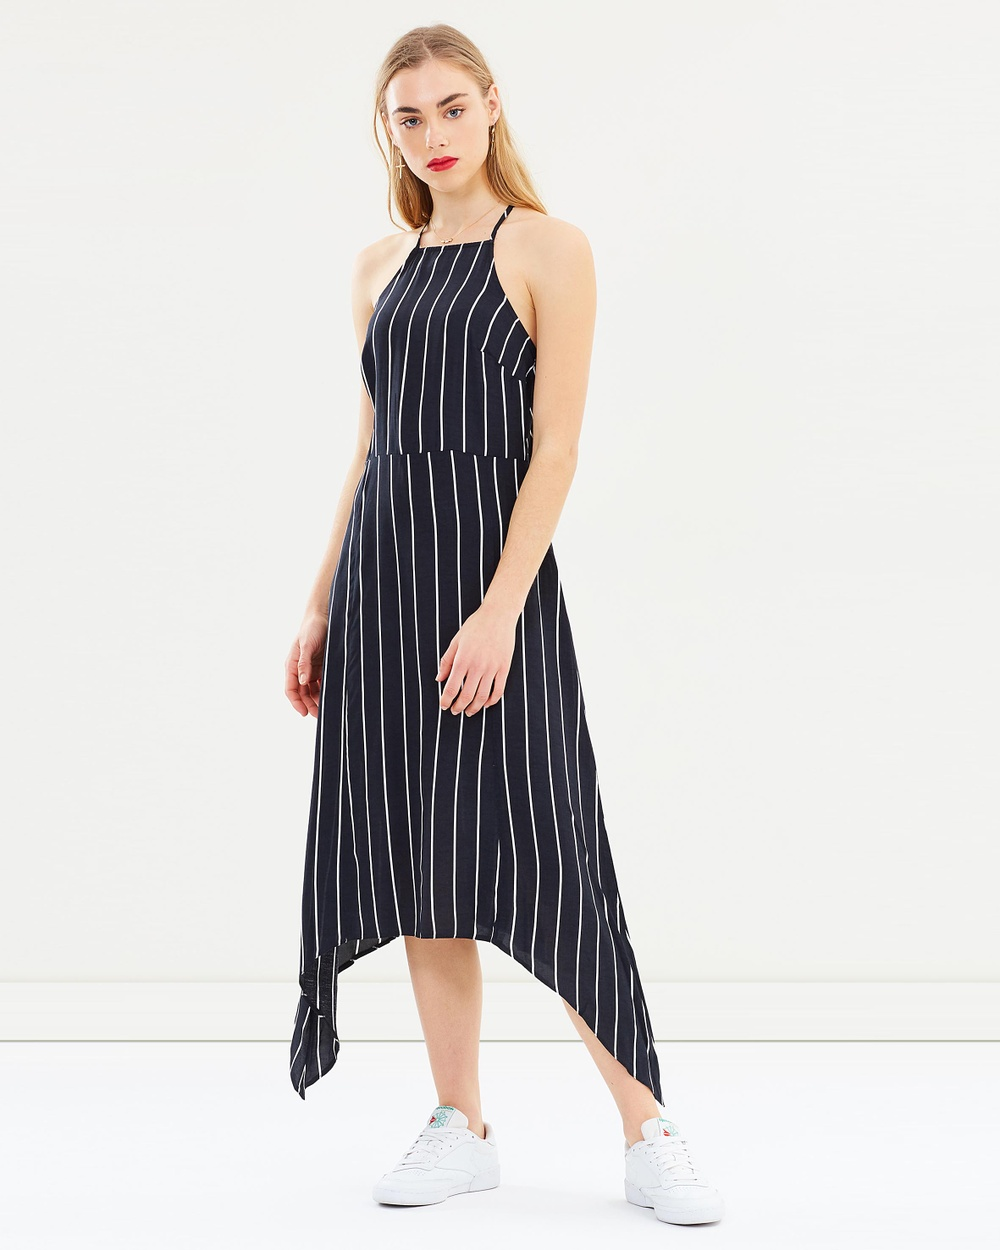 Miss Selfridge Stripe Hanky Hem Dress Dresses Black Stripe Hanky Hem Dress